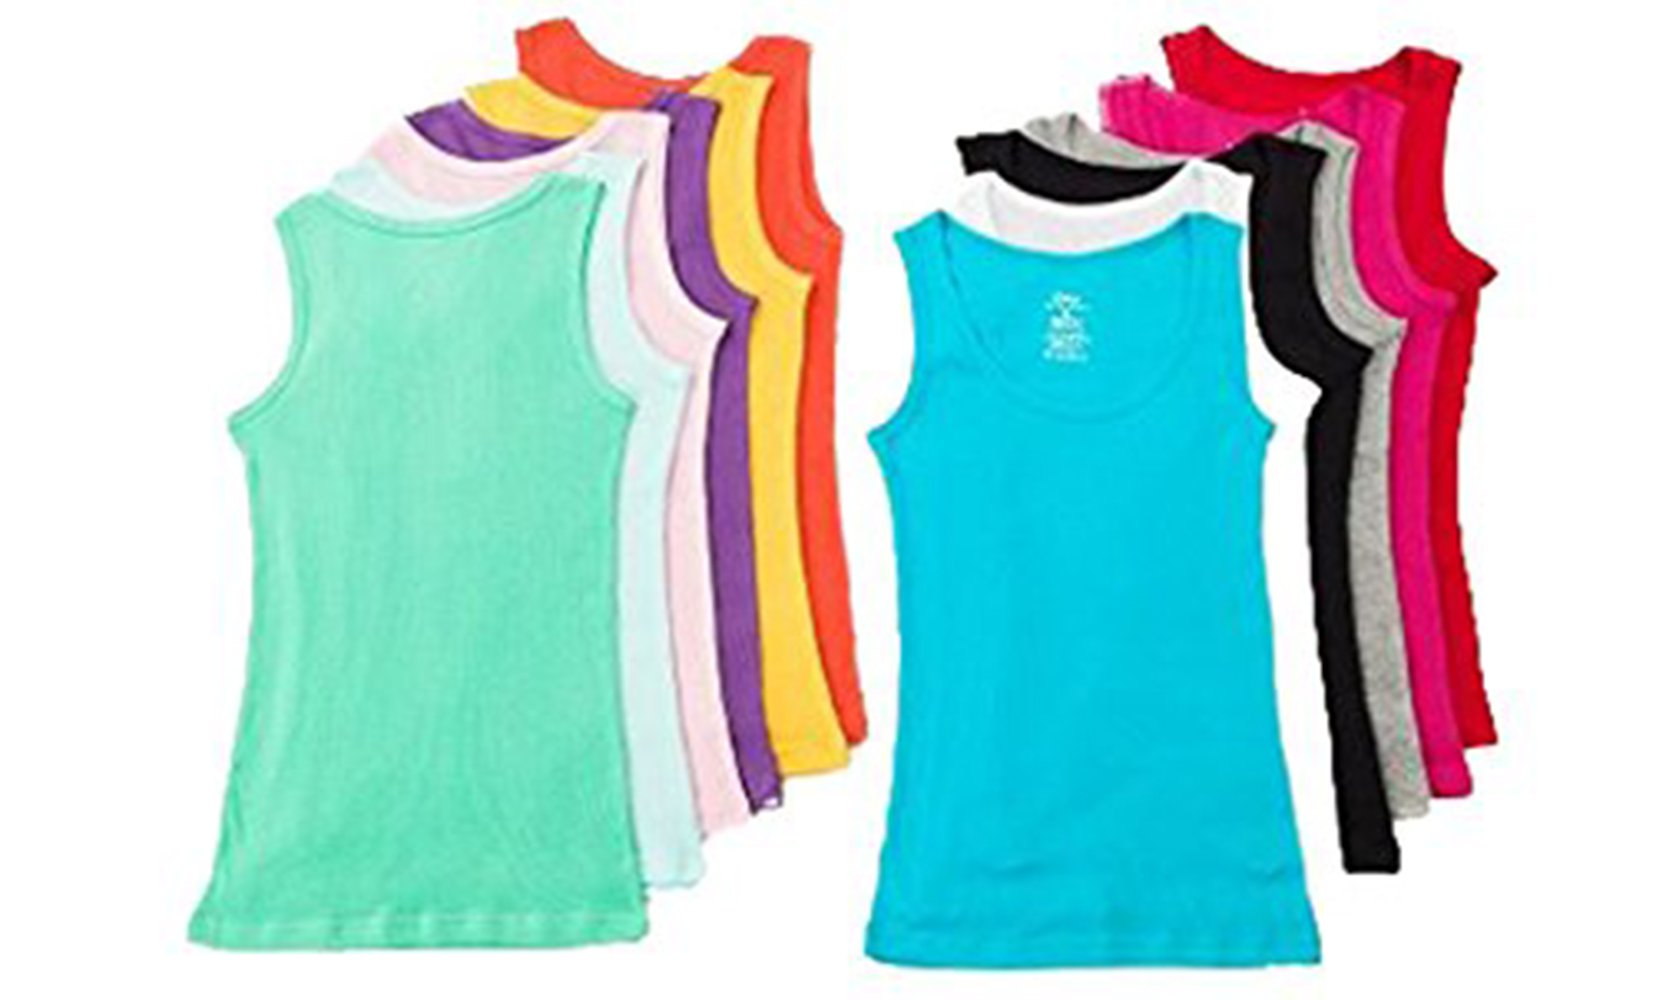 Grip Collections 12-Pack of Women's Ribbed Cotton Muscle Tank Tops, Large by Grip Collections (Image #2)